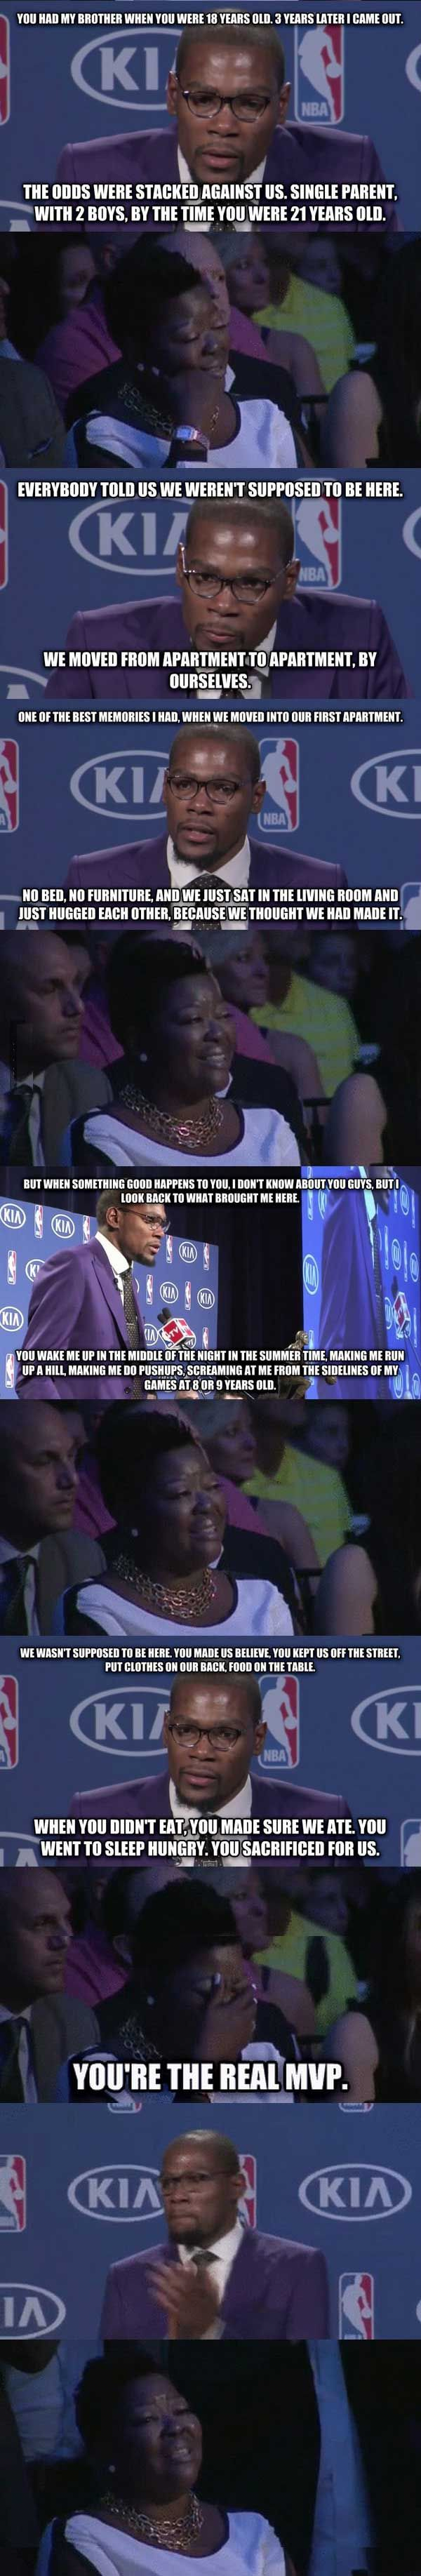 Kevin Durant talks about his mom during MVP speech! (12 Pics)